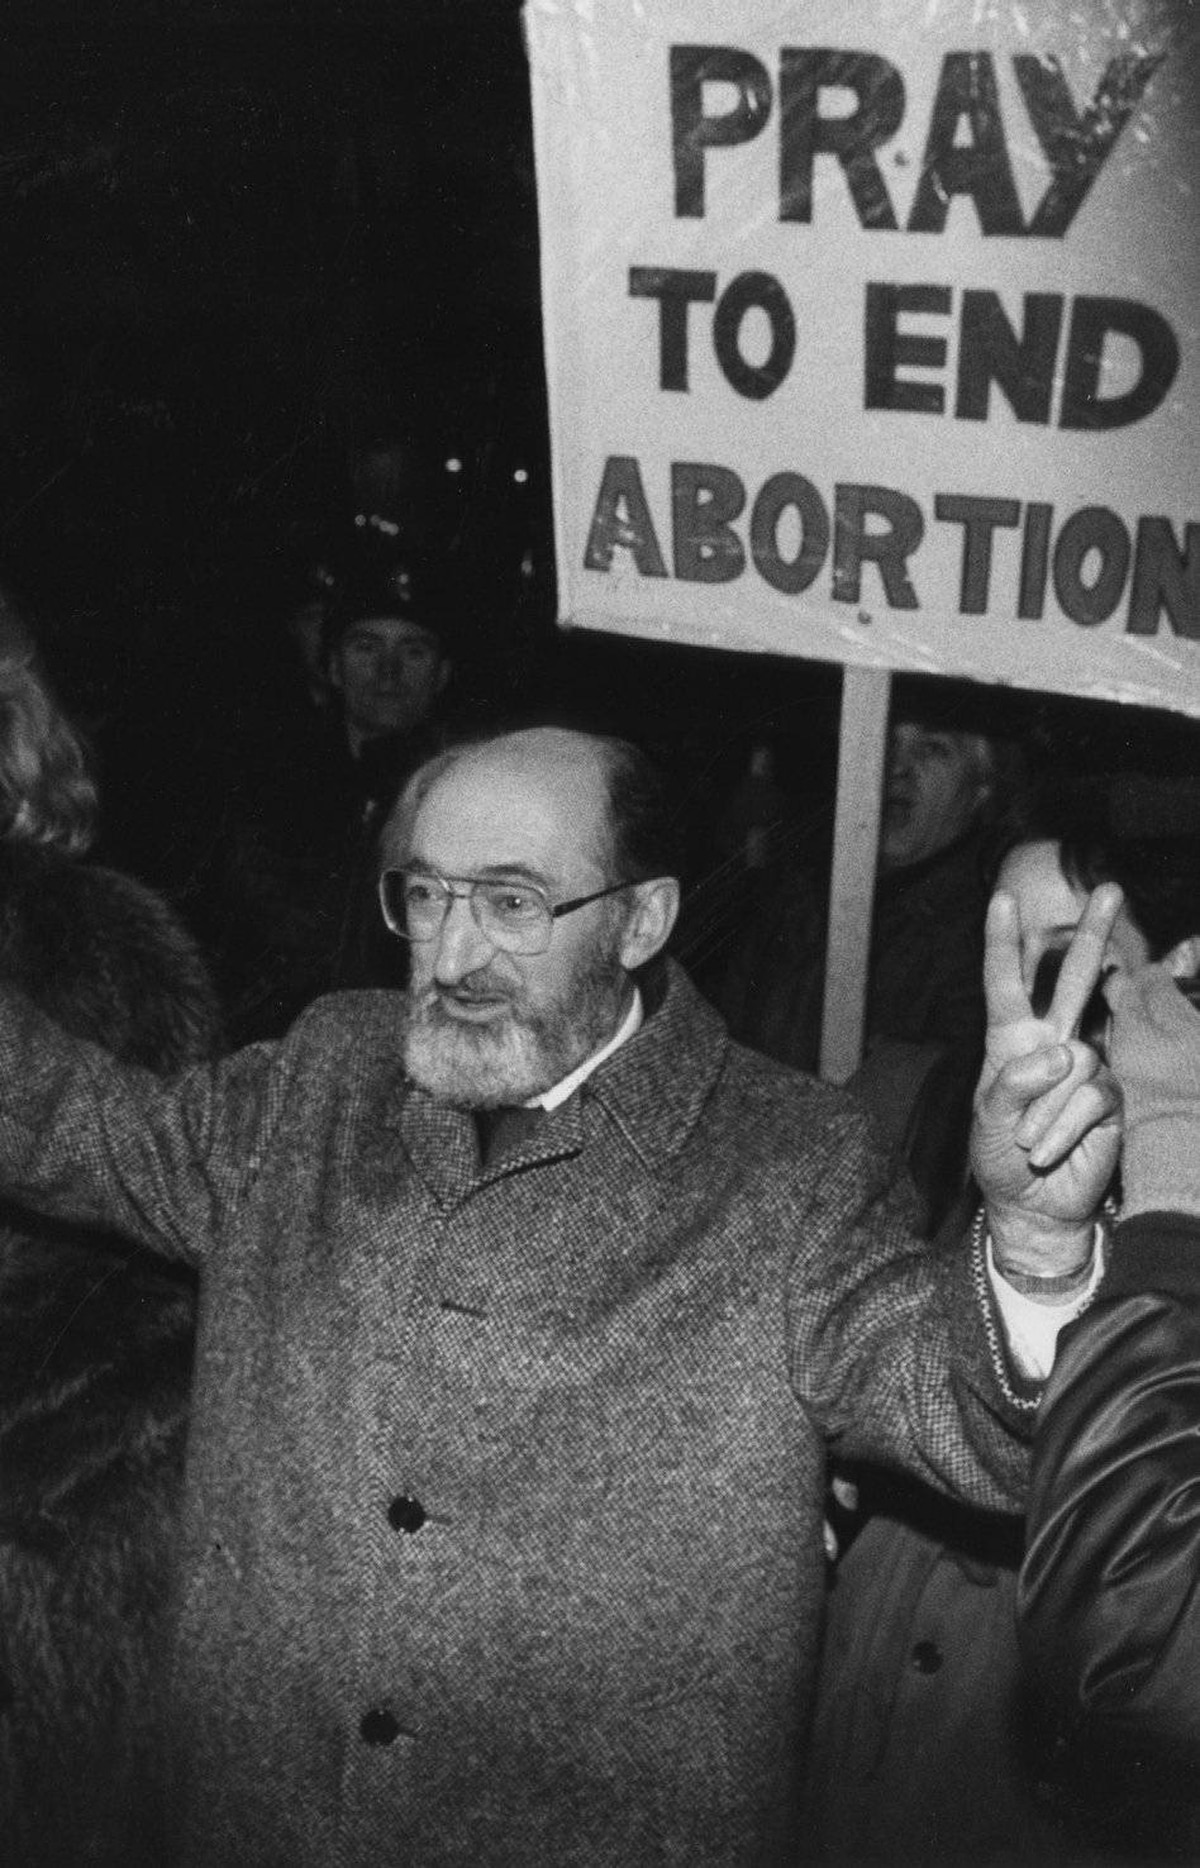 R v. MORGENTALER, 1988 Henry Morgentaler and two colleagues were charged with conducting illegal abortions. The court ruled 5-2 that the administrative procedures were cumbersome and unjustifiably interfered with the body integrity of women.